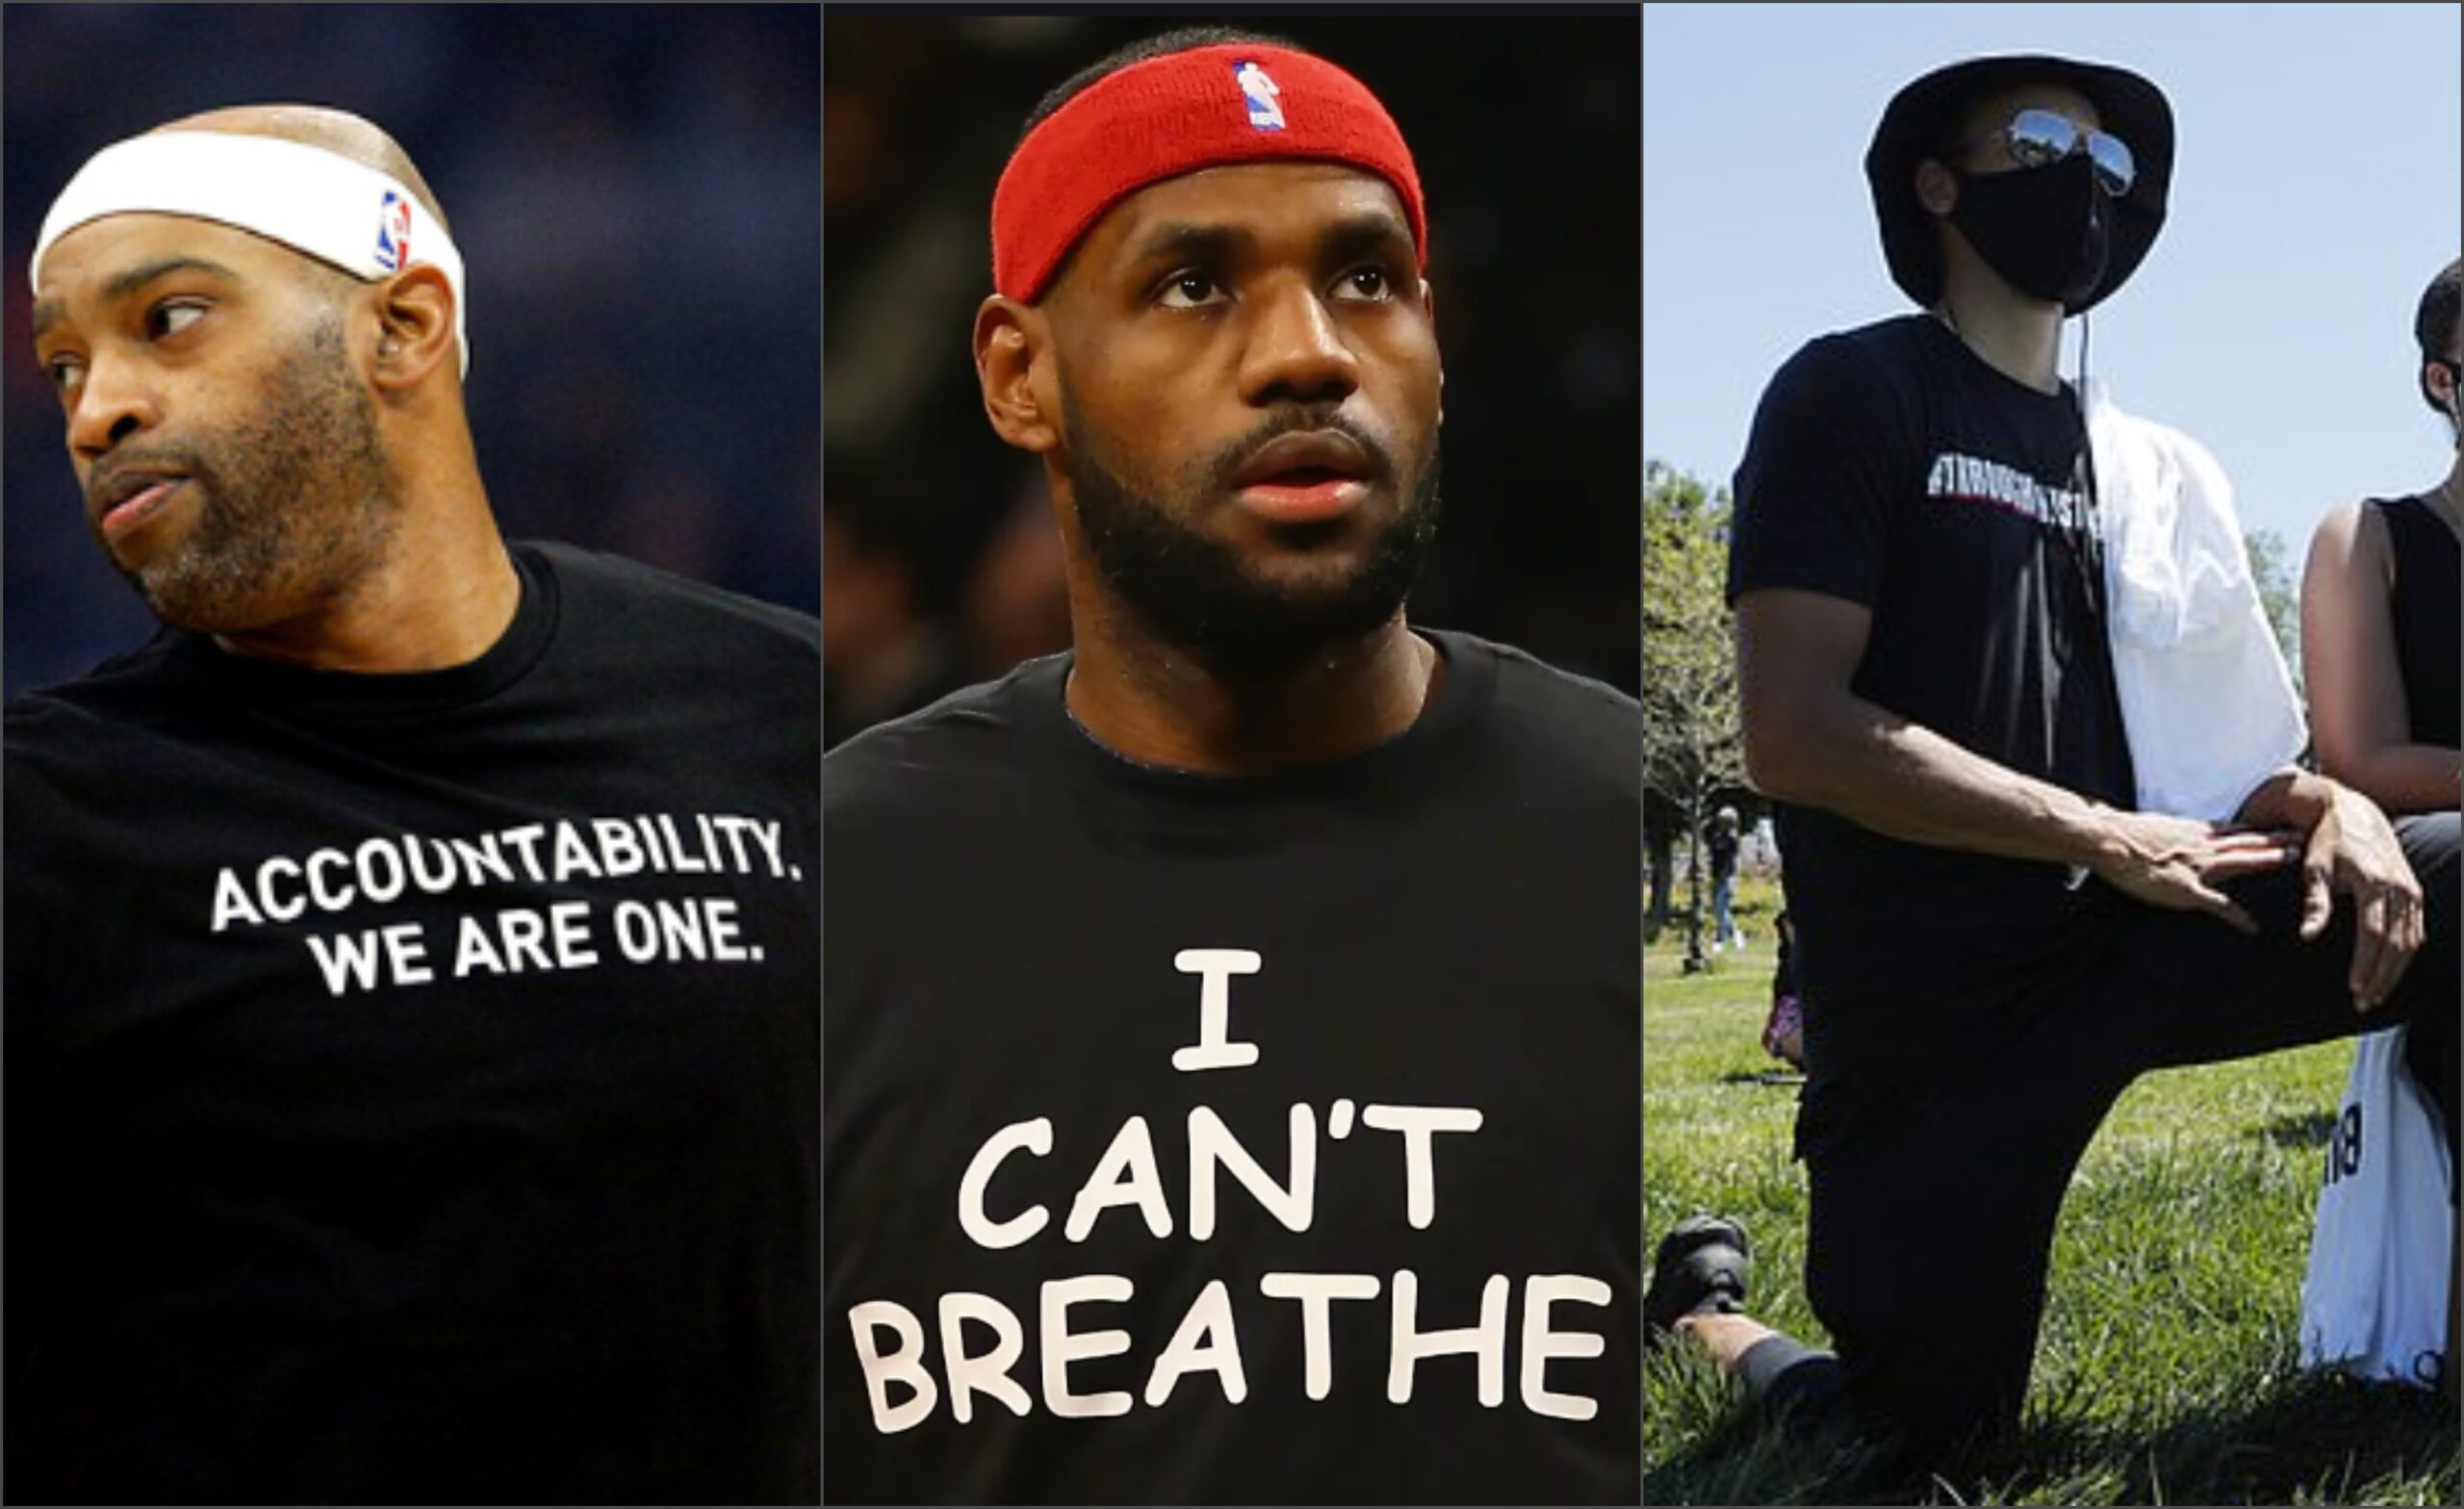 Black Lives Matter and NBA players